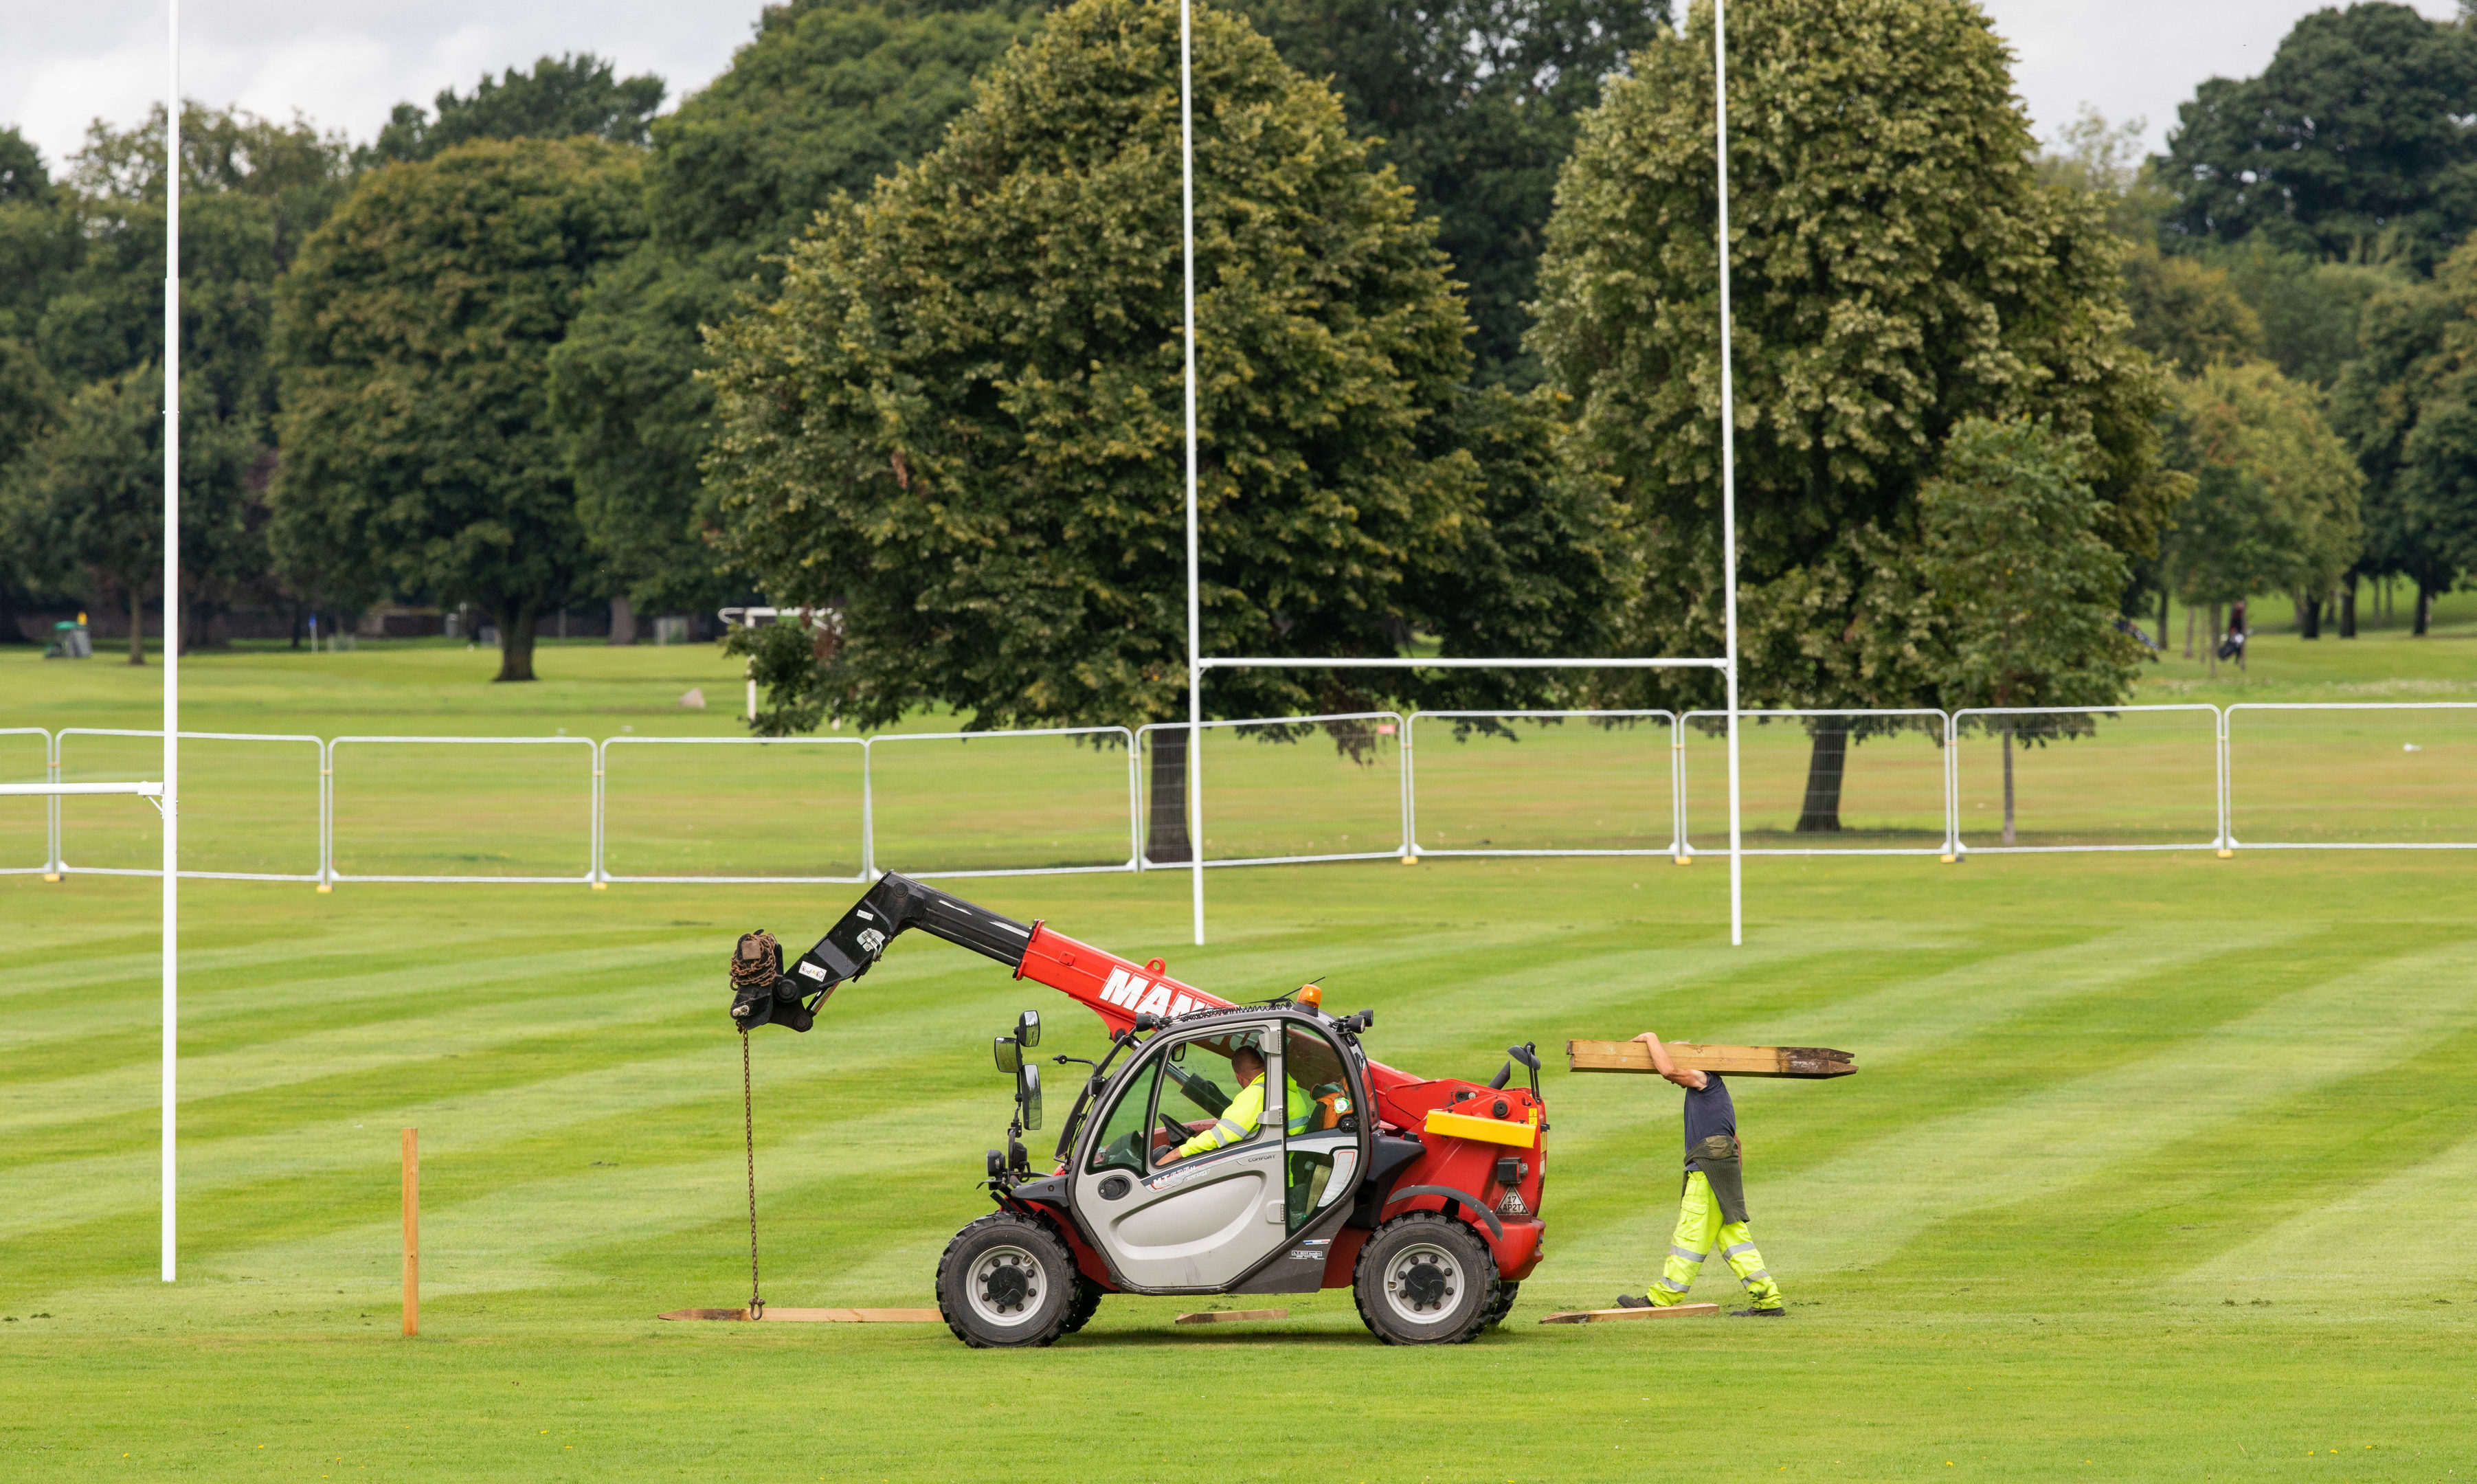 Work has started to erect the pop up stadium for the Glasgow Warriors rugby game in Perth.